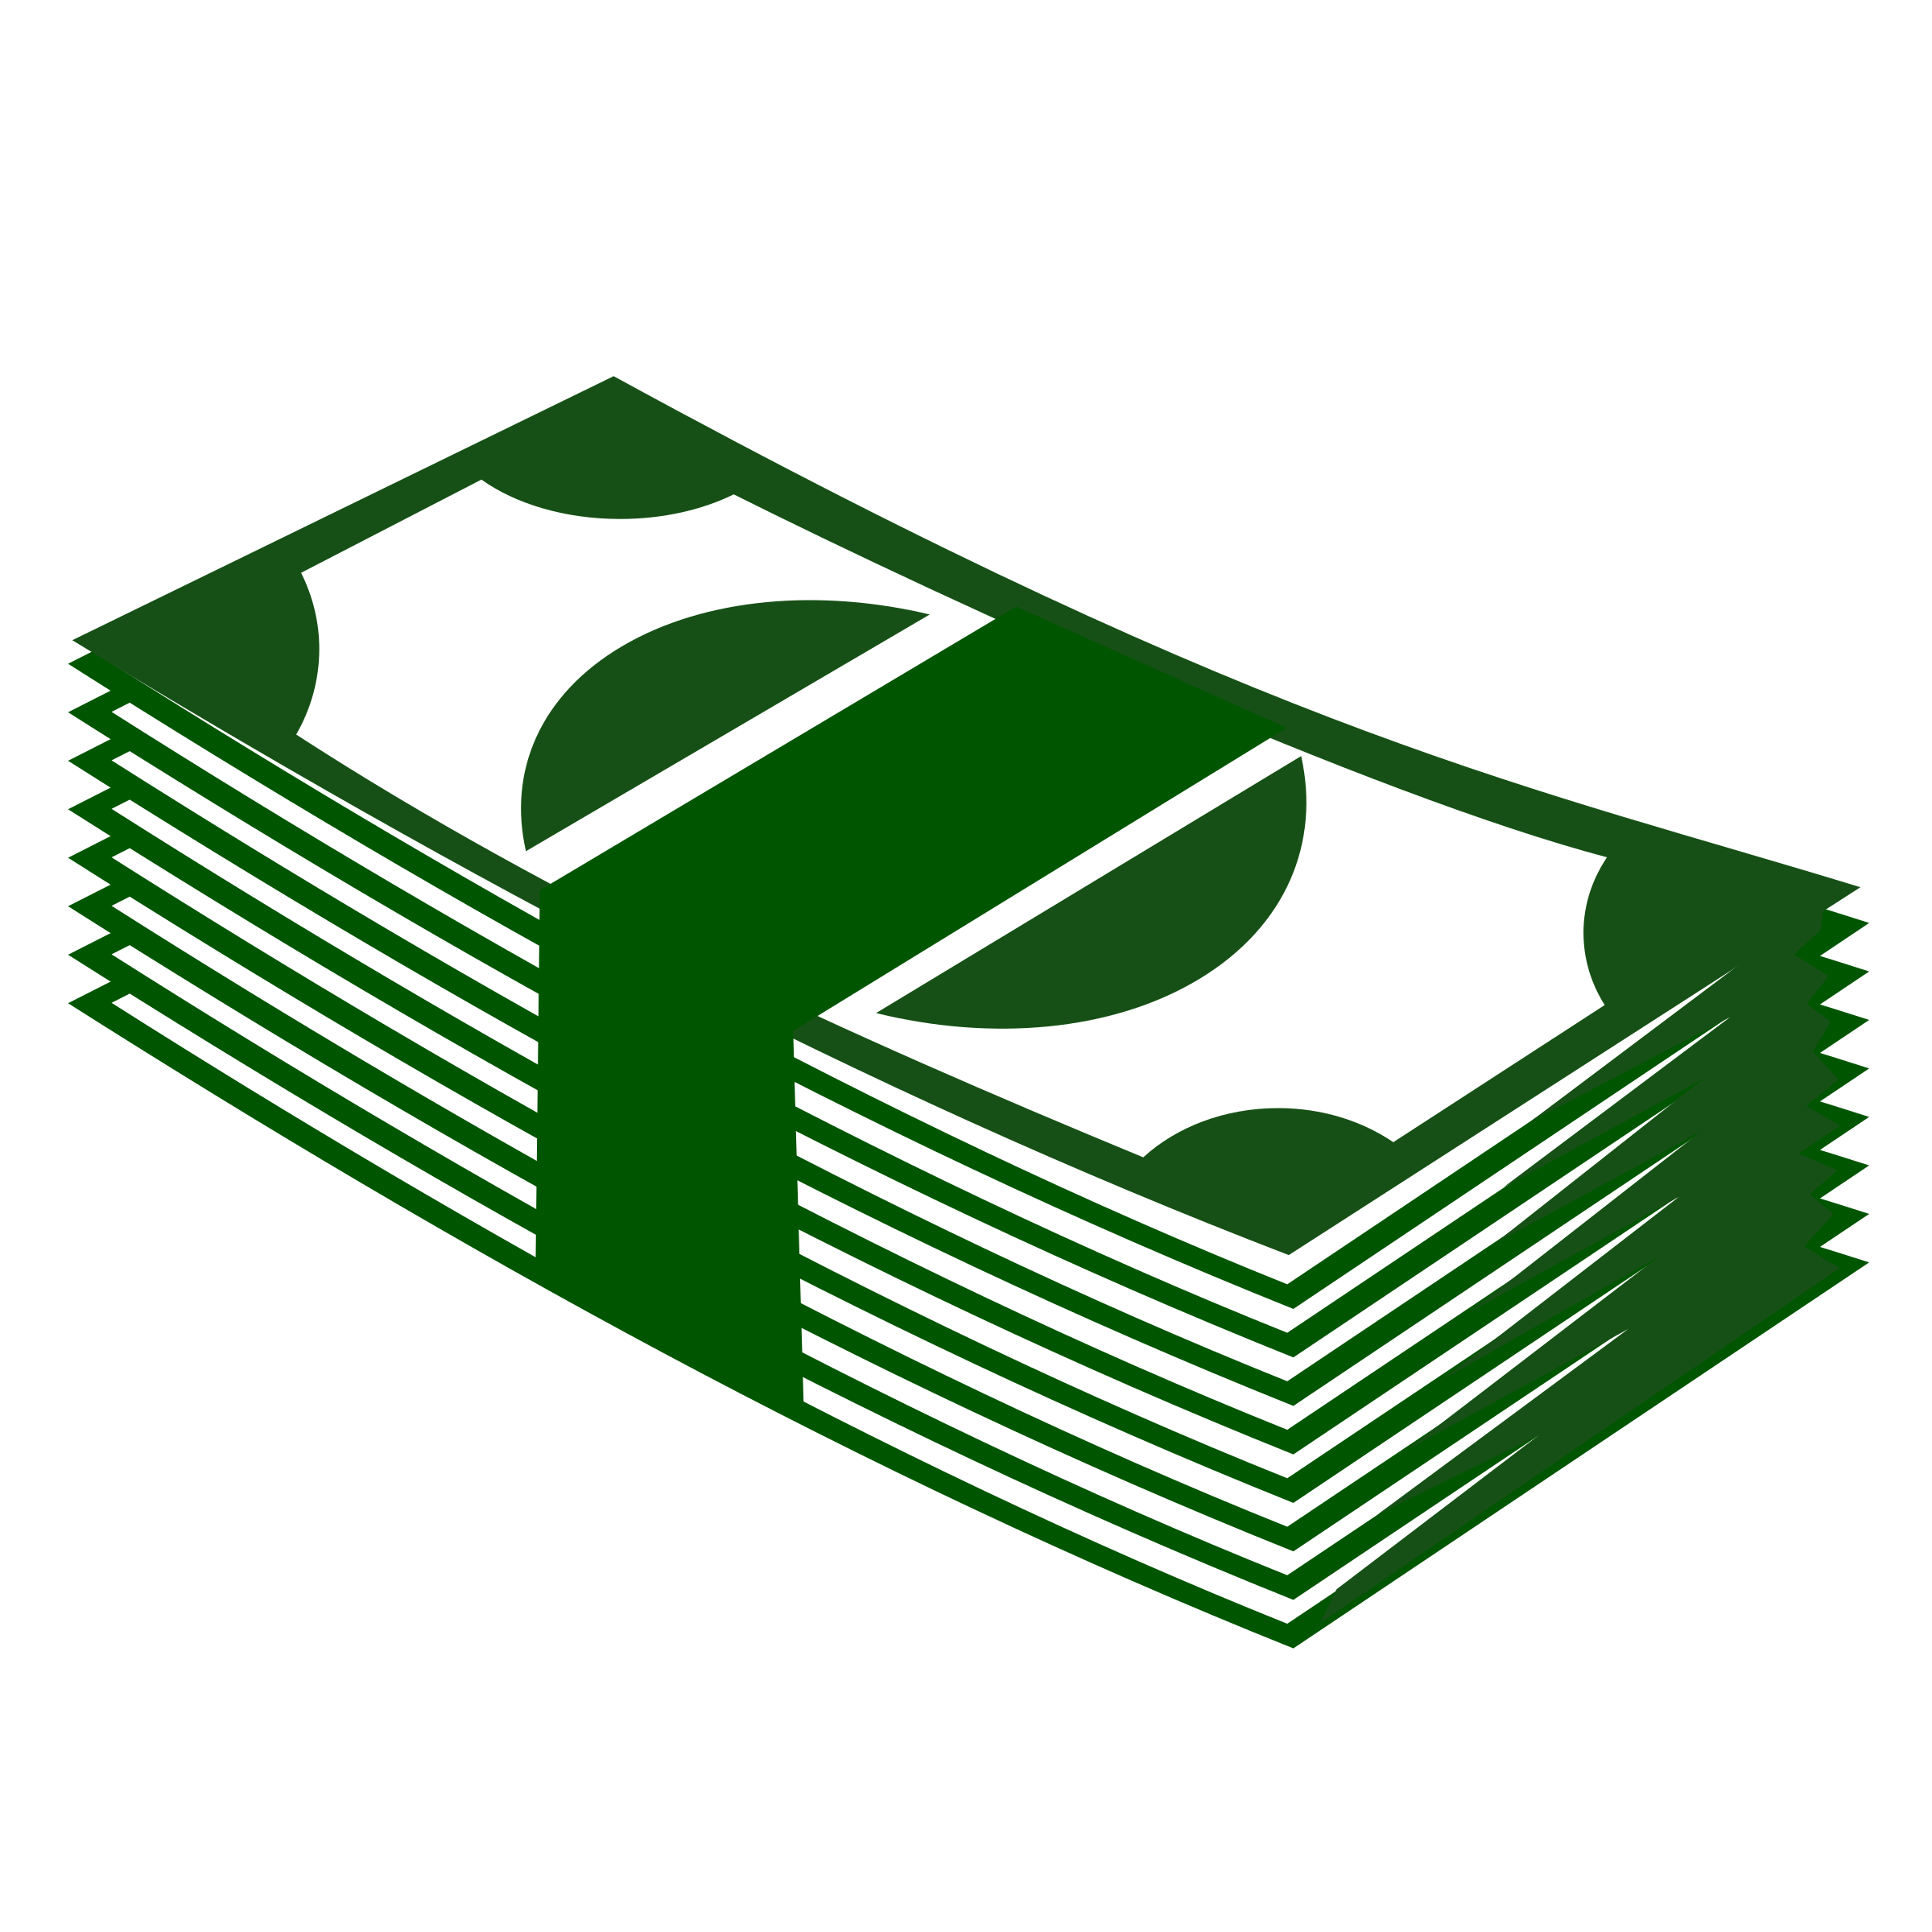 Money clipart #5, Download drawings